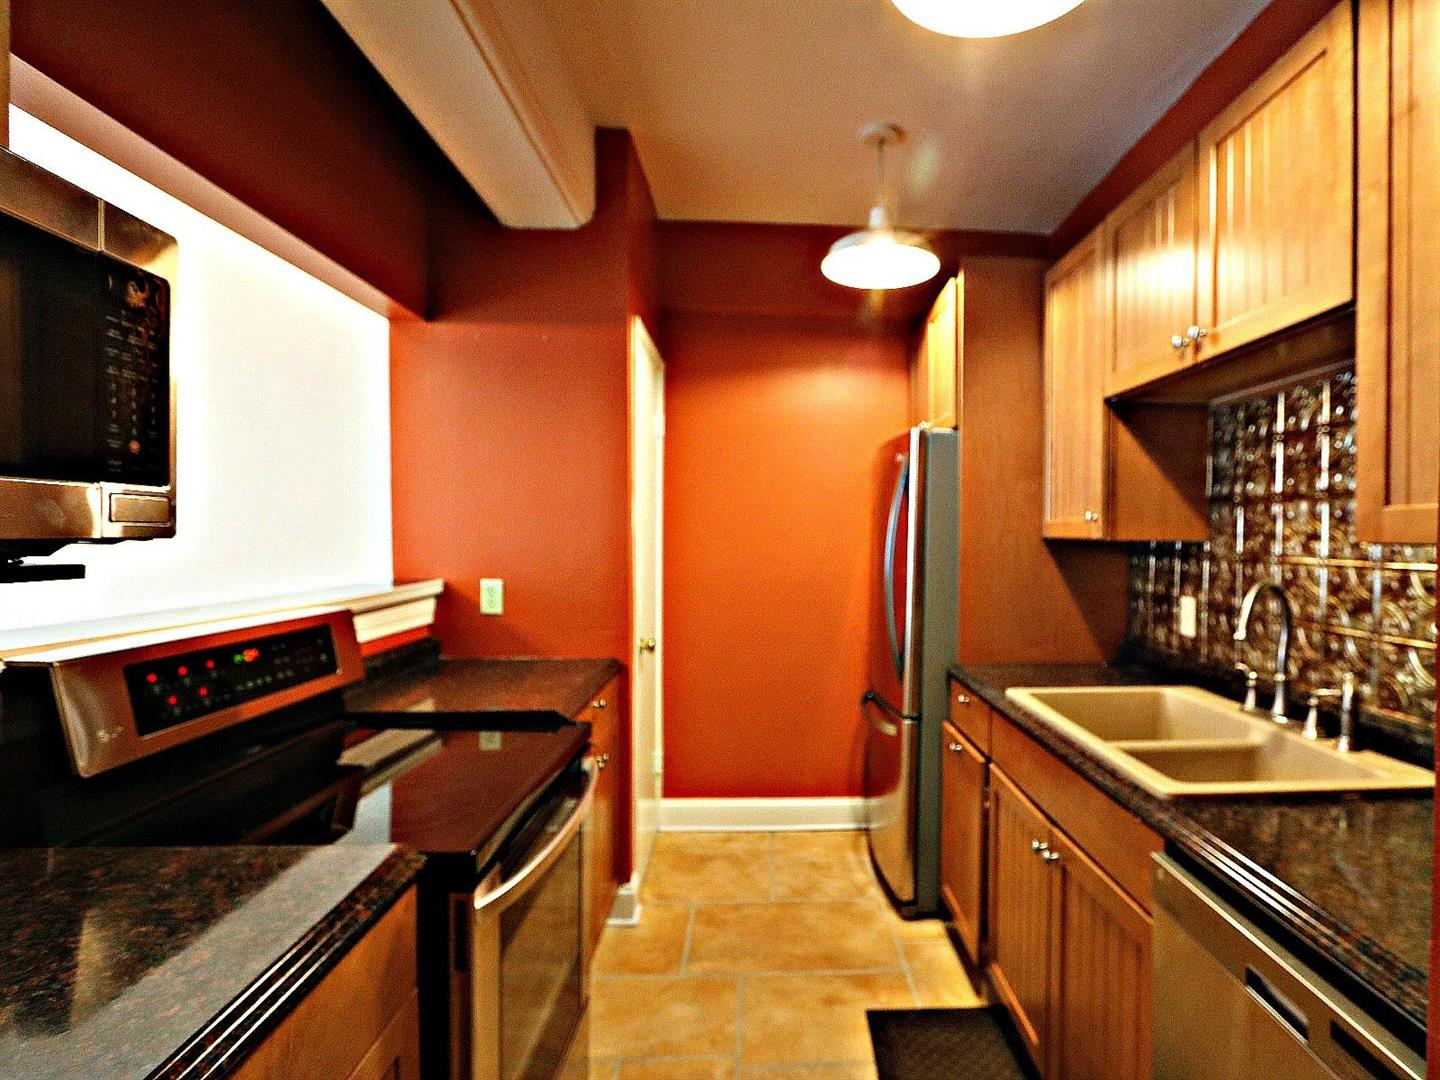 333JuliaSt.Condo214Kitchen2.jpg